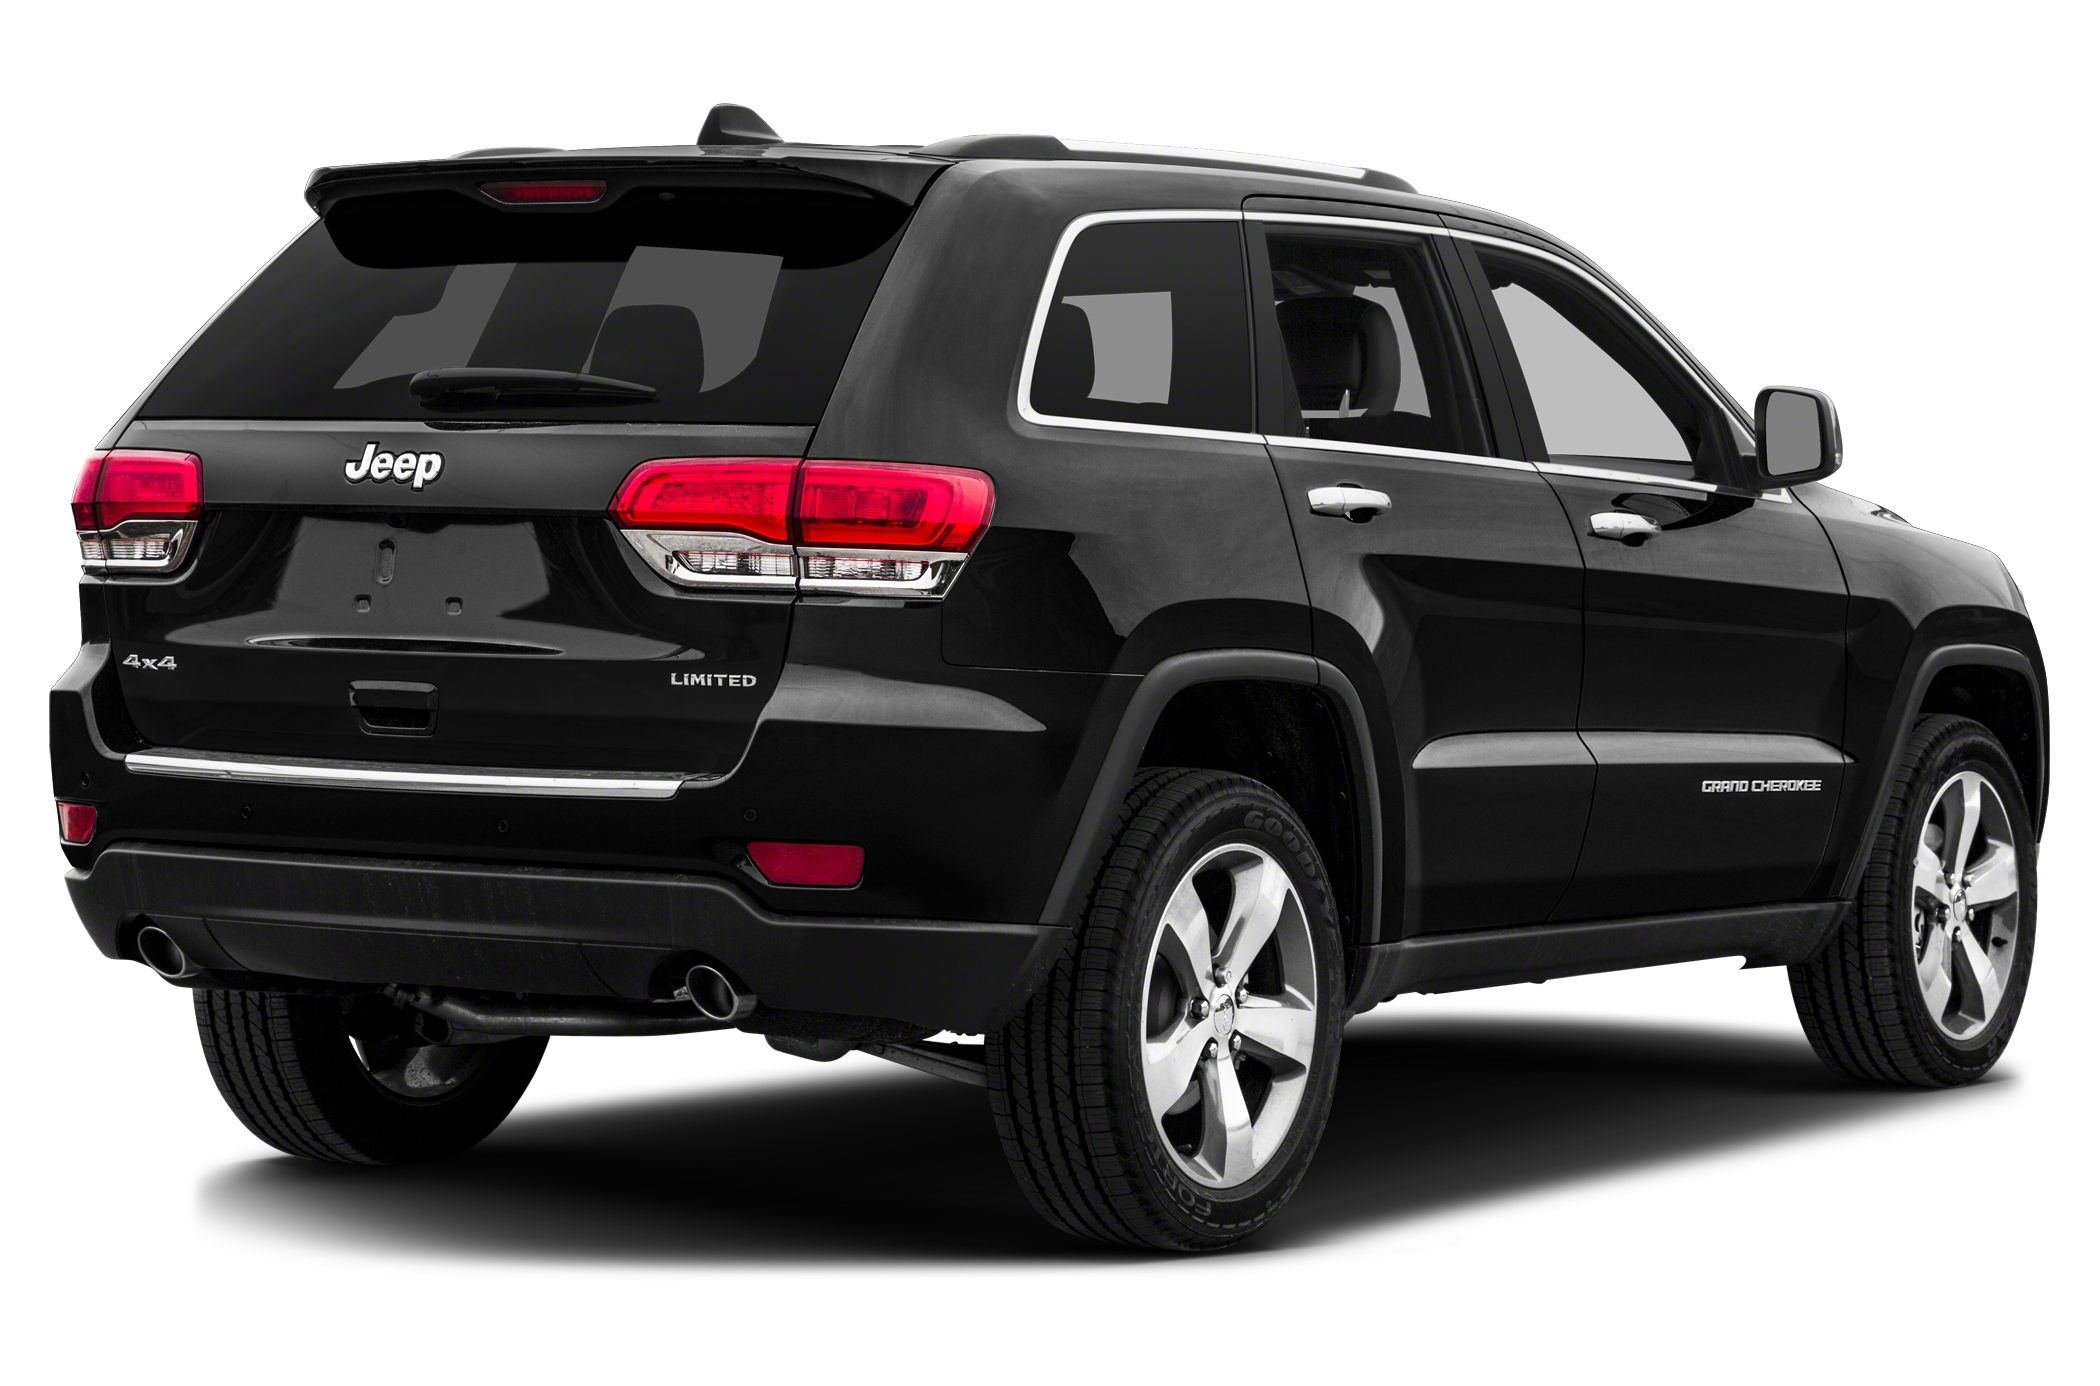 2015 Jeep Grand Cherokee Limited ONE PRICE STOP NO HASSLE NO HAGGLE CAR BUYING EXPERIENCE